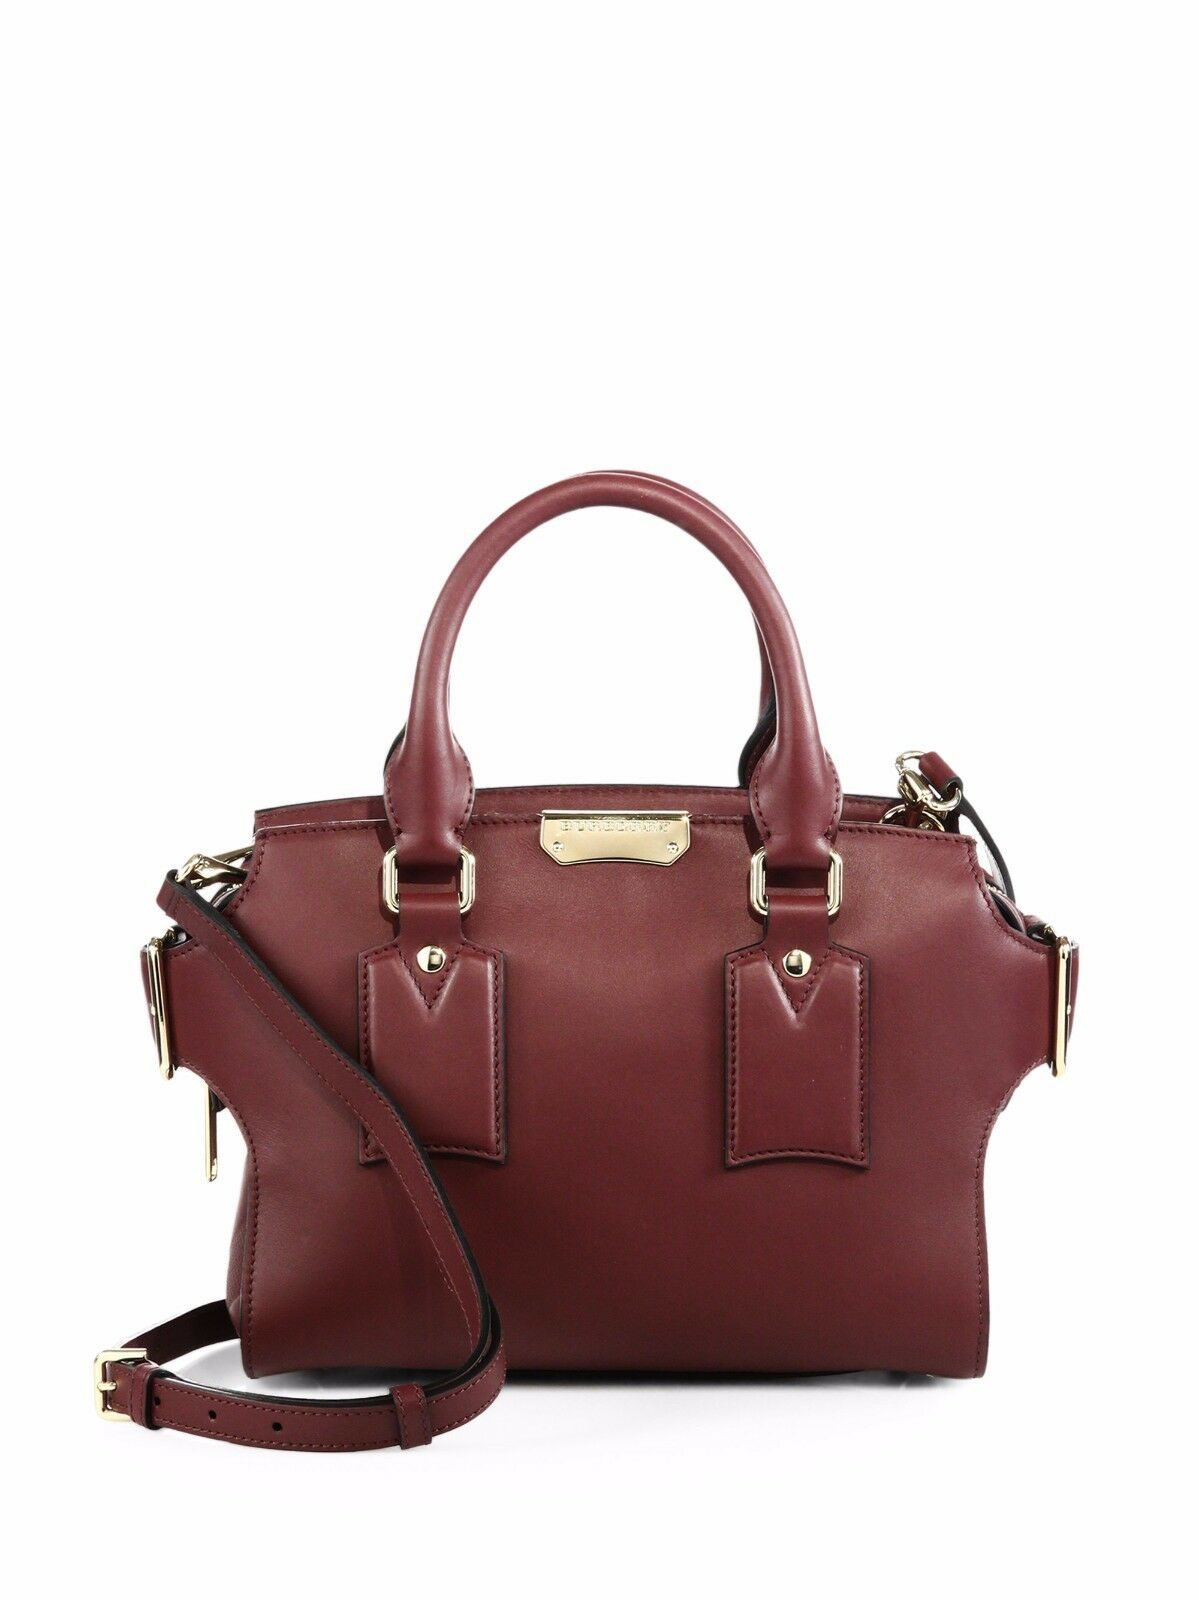 adccc73b51a2 100 Auth Burberry Small Gainsborough Signature Red Satchel Bag handbag for  sale online